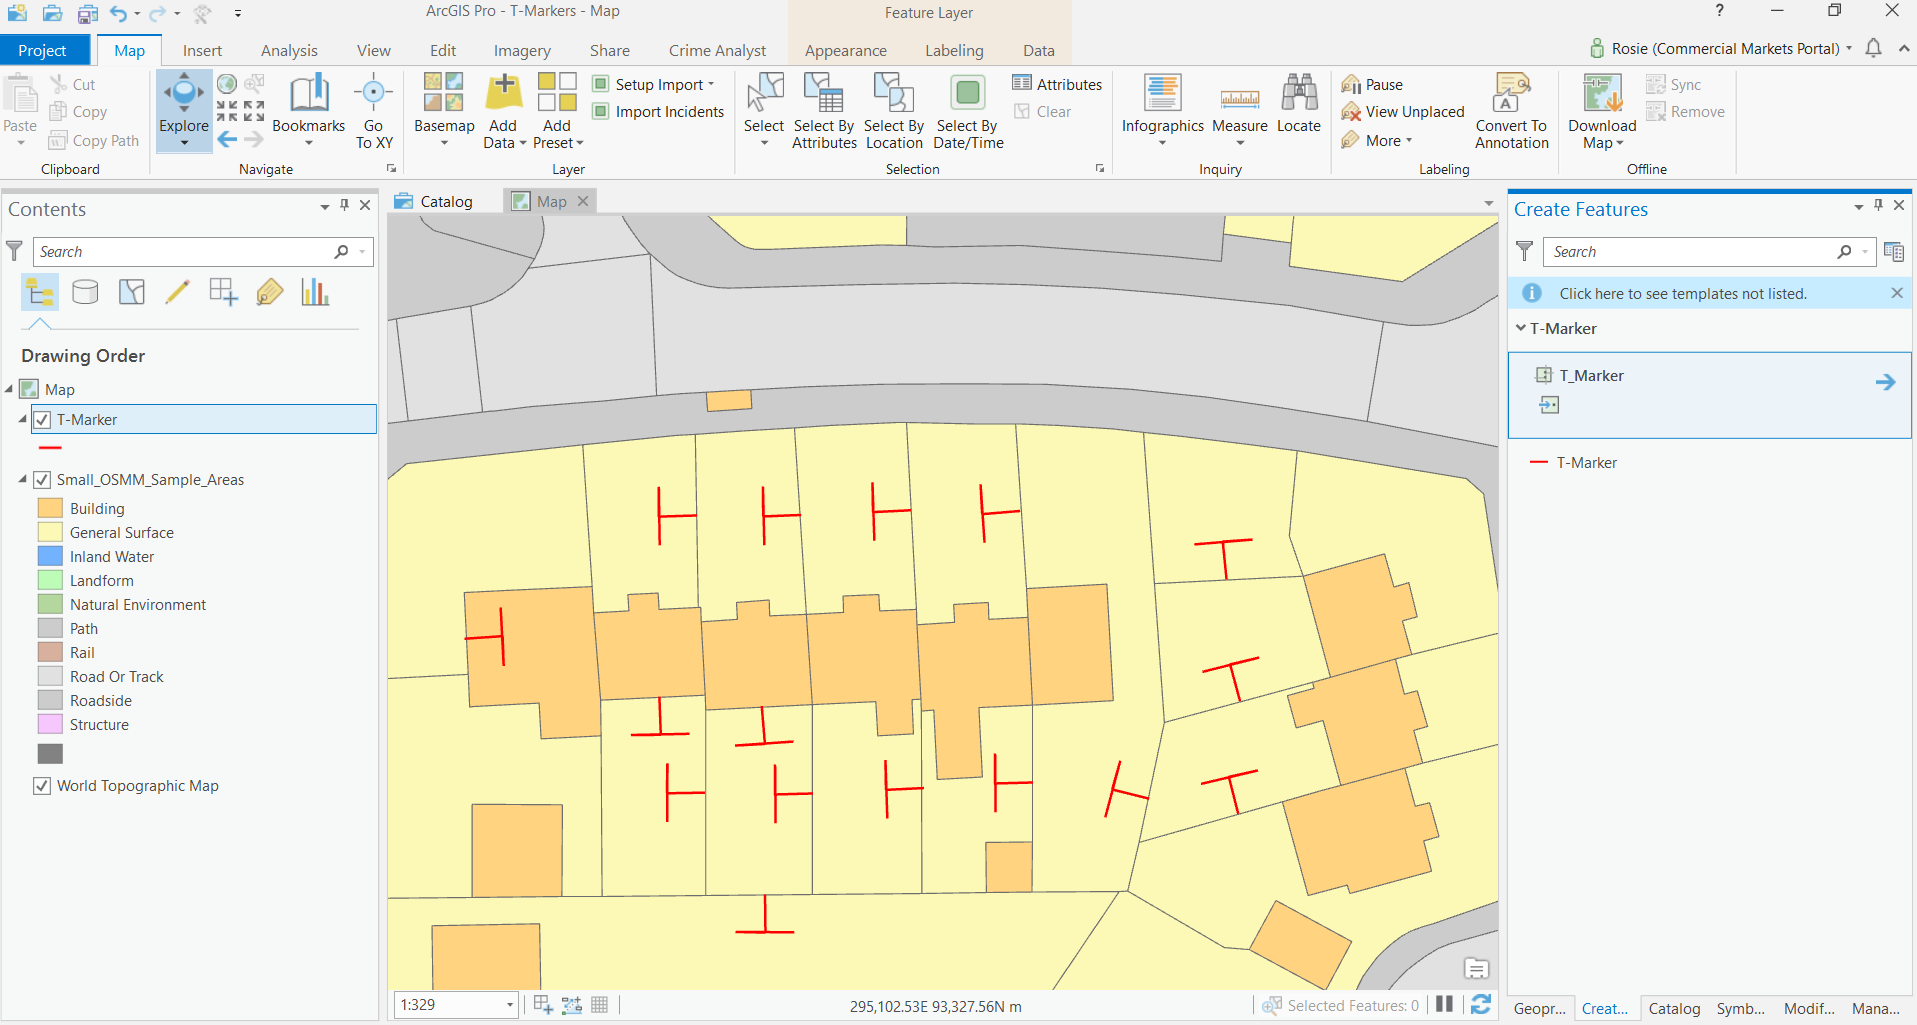 How to do polygon Red-Lining and T-Markers in ArcGIS Pro